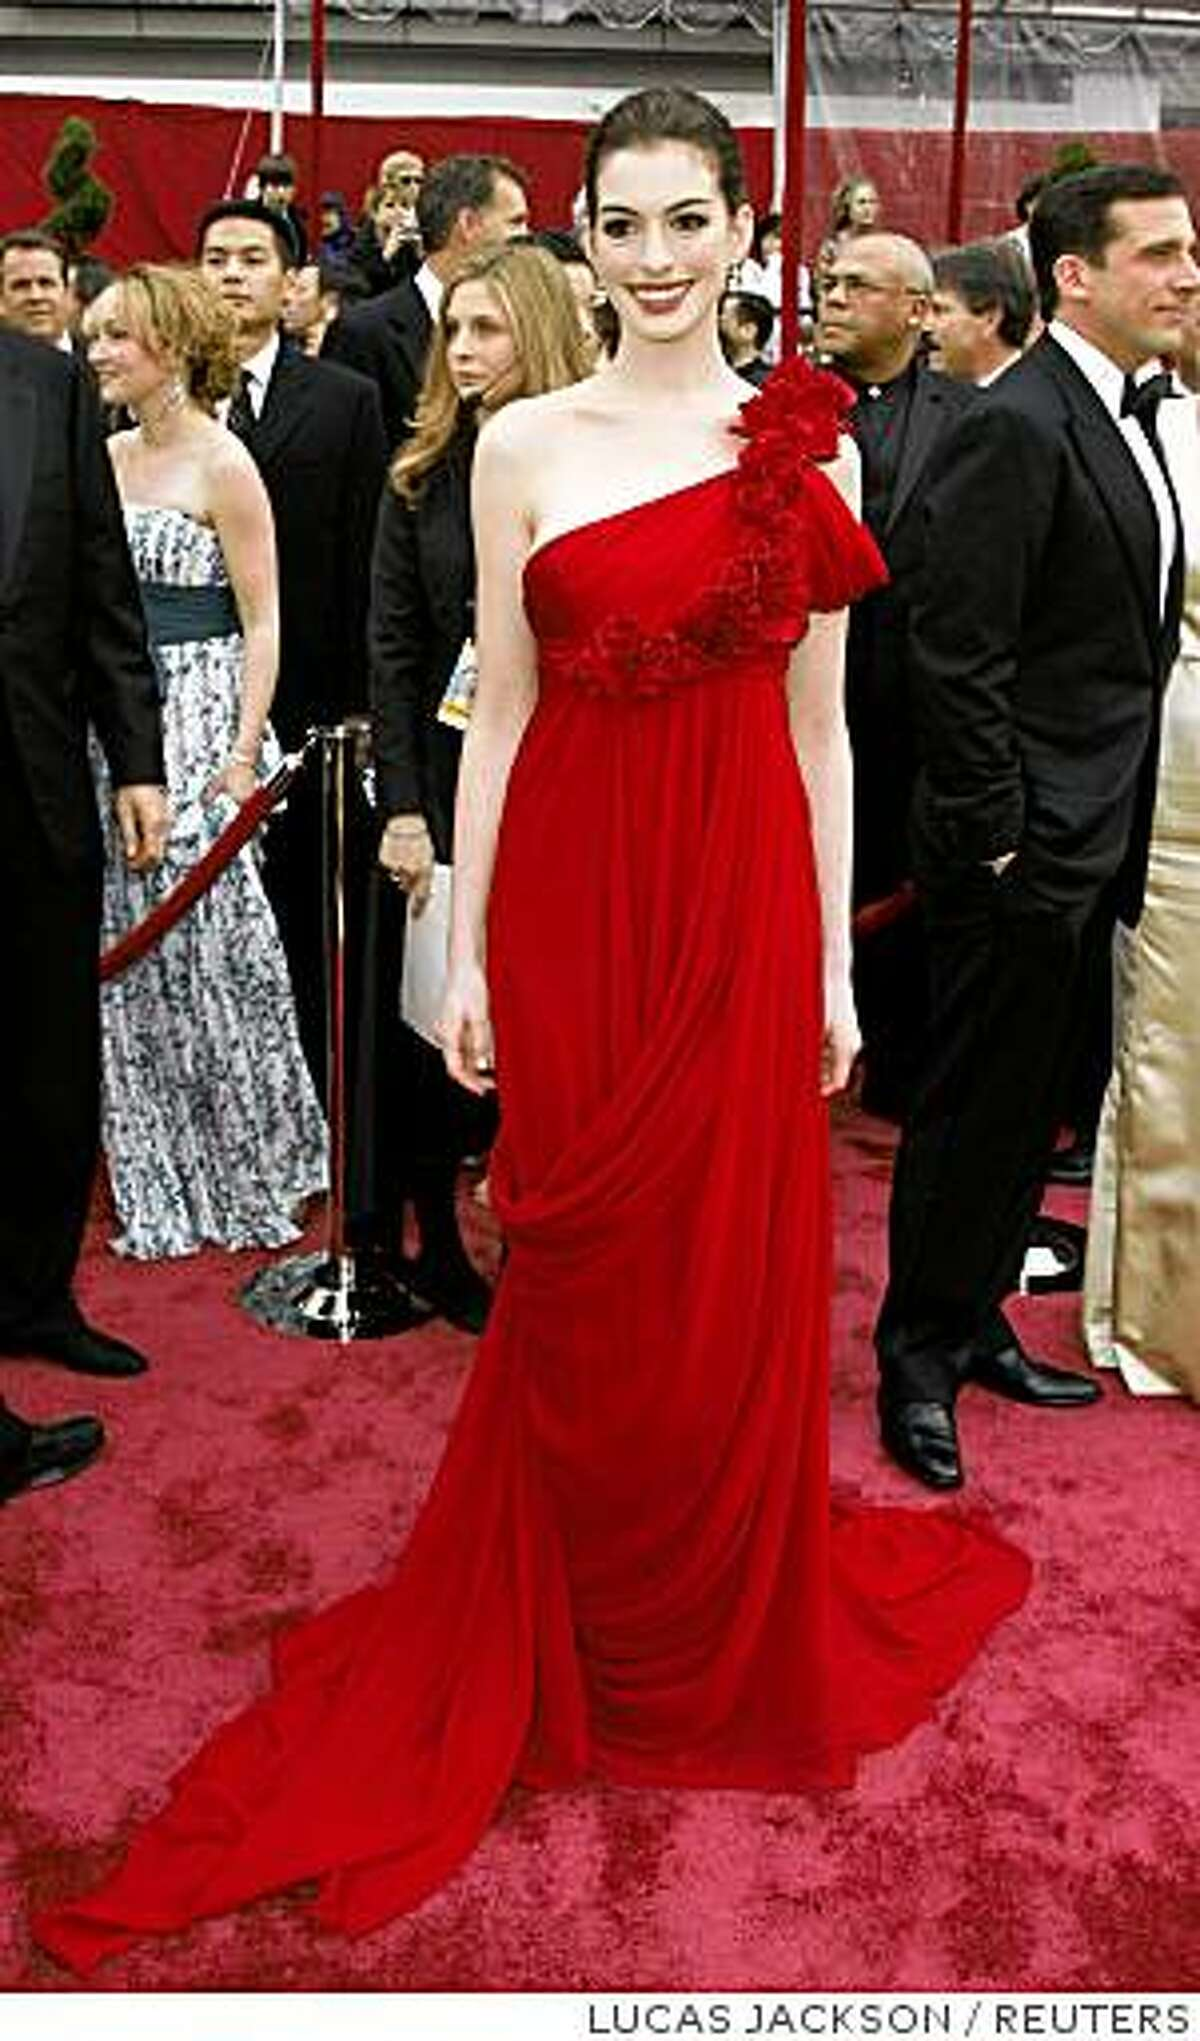 Actors Anne Hathaway and Steve Carell (R) arrive at the 80th annual Academy Awards, the Oscars, in Hollywood, February 24, 2008. REUTERS/Lucas Jackson (UNITED STATES-OSCARS)